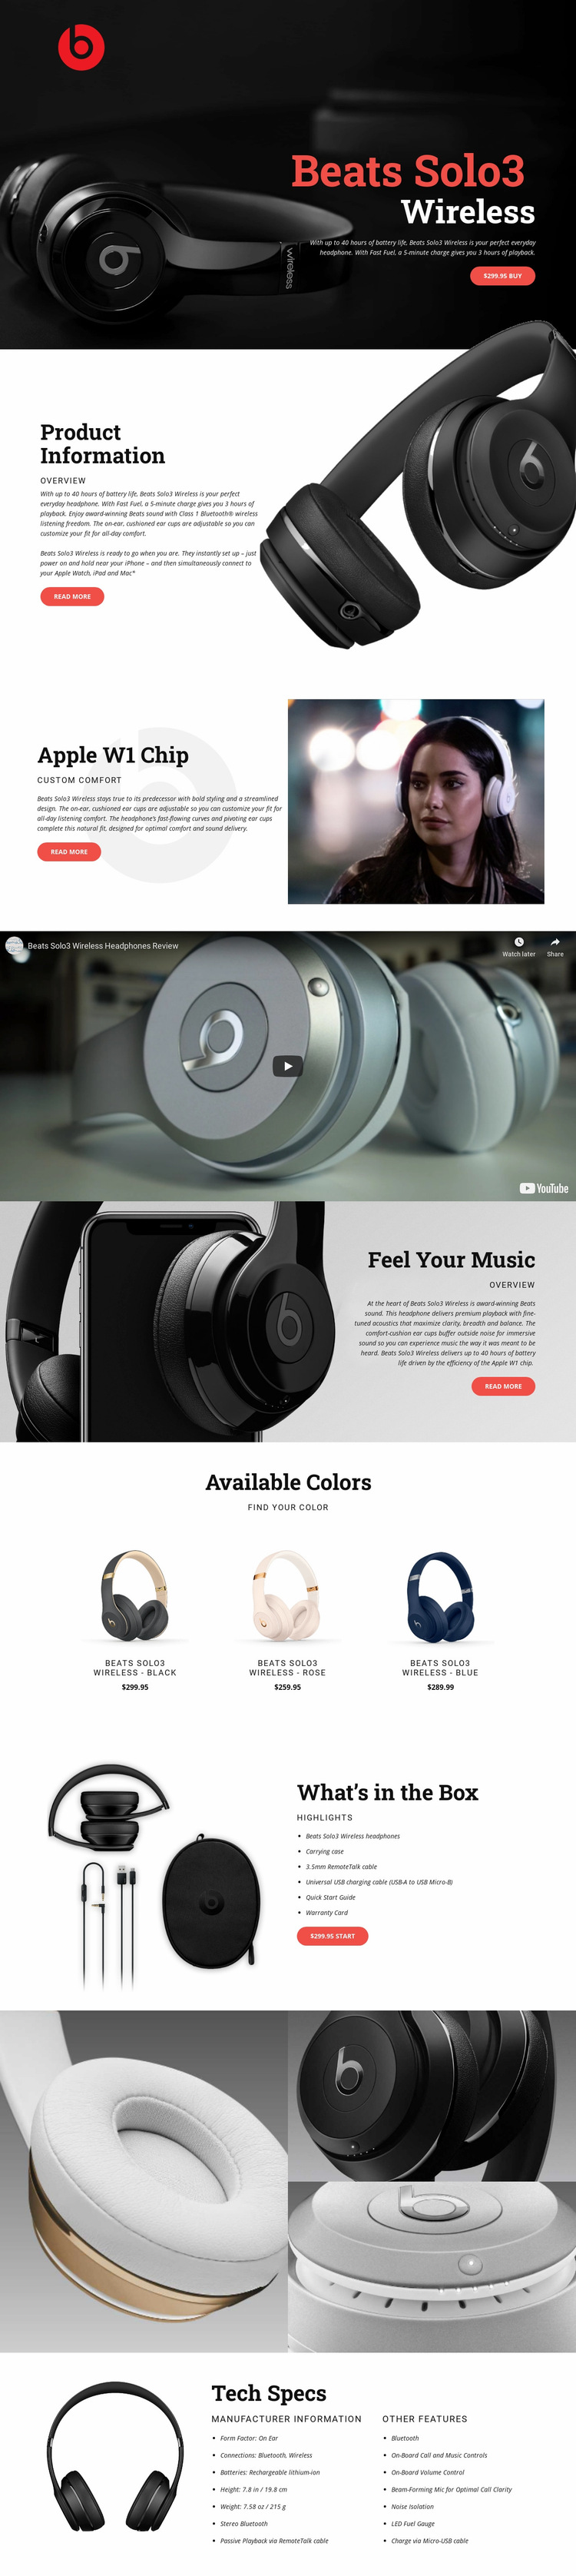 Outstanding quality of music Web Page Design